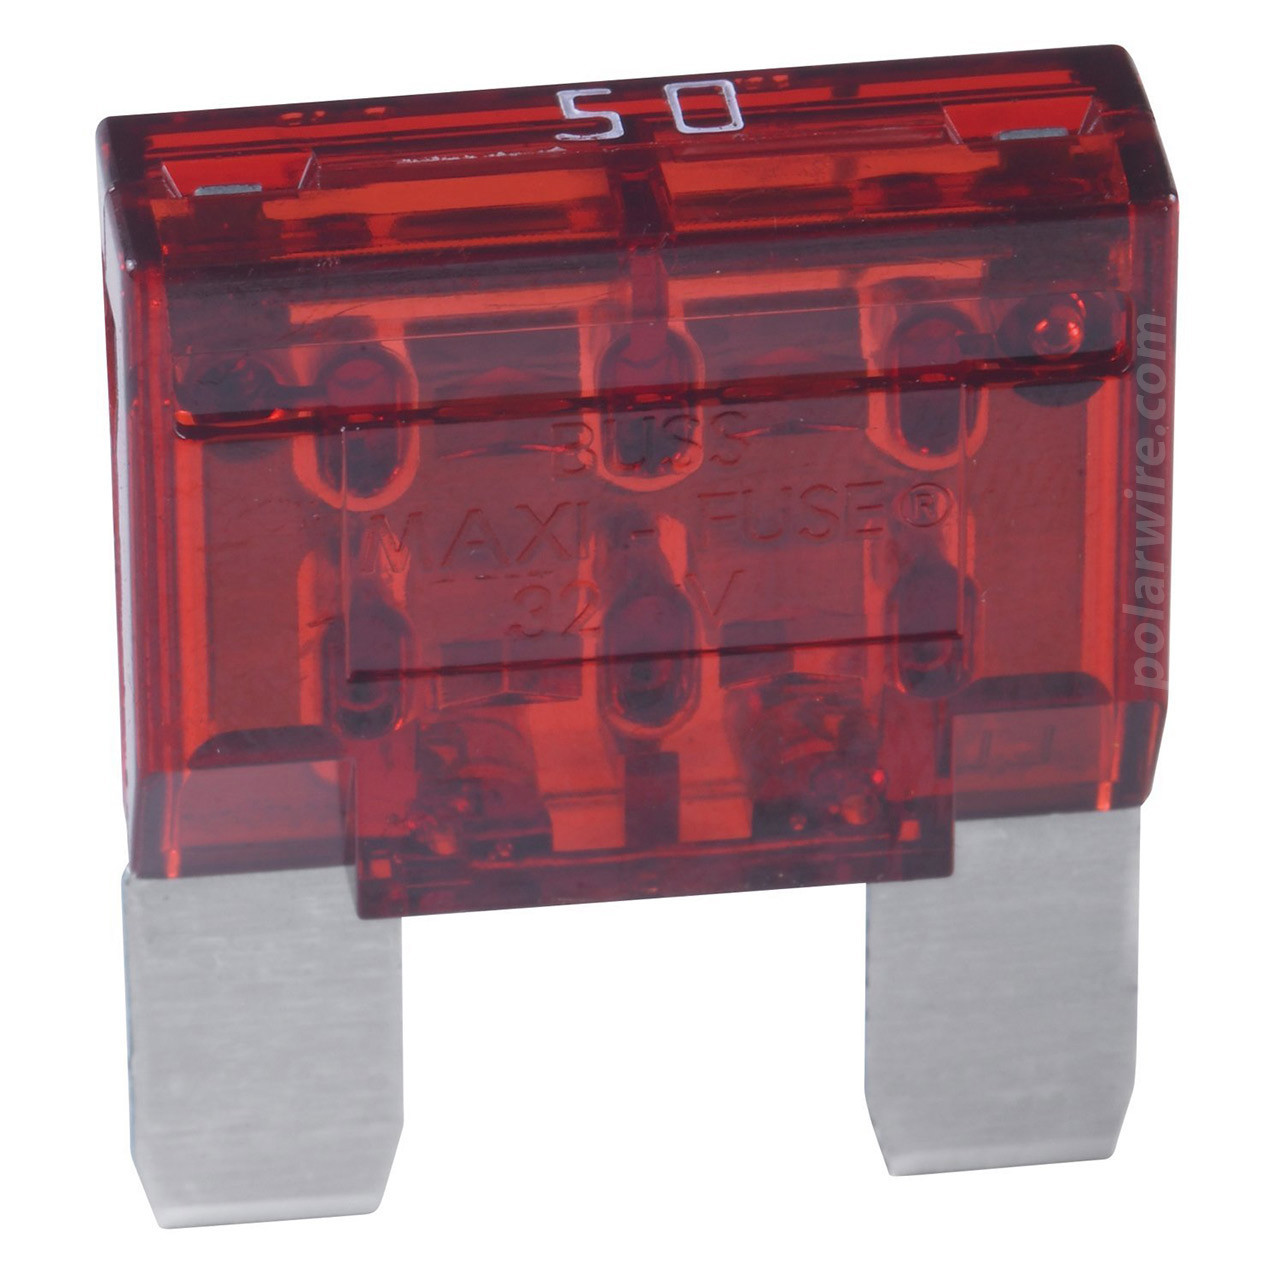 FUSE 50 AMP BLISTER PACK MAX MAXI-BLADE FUSE